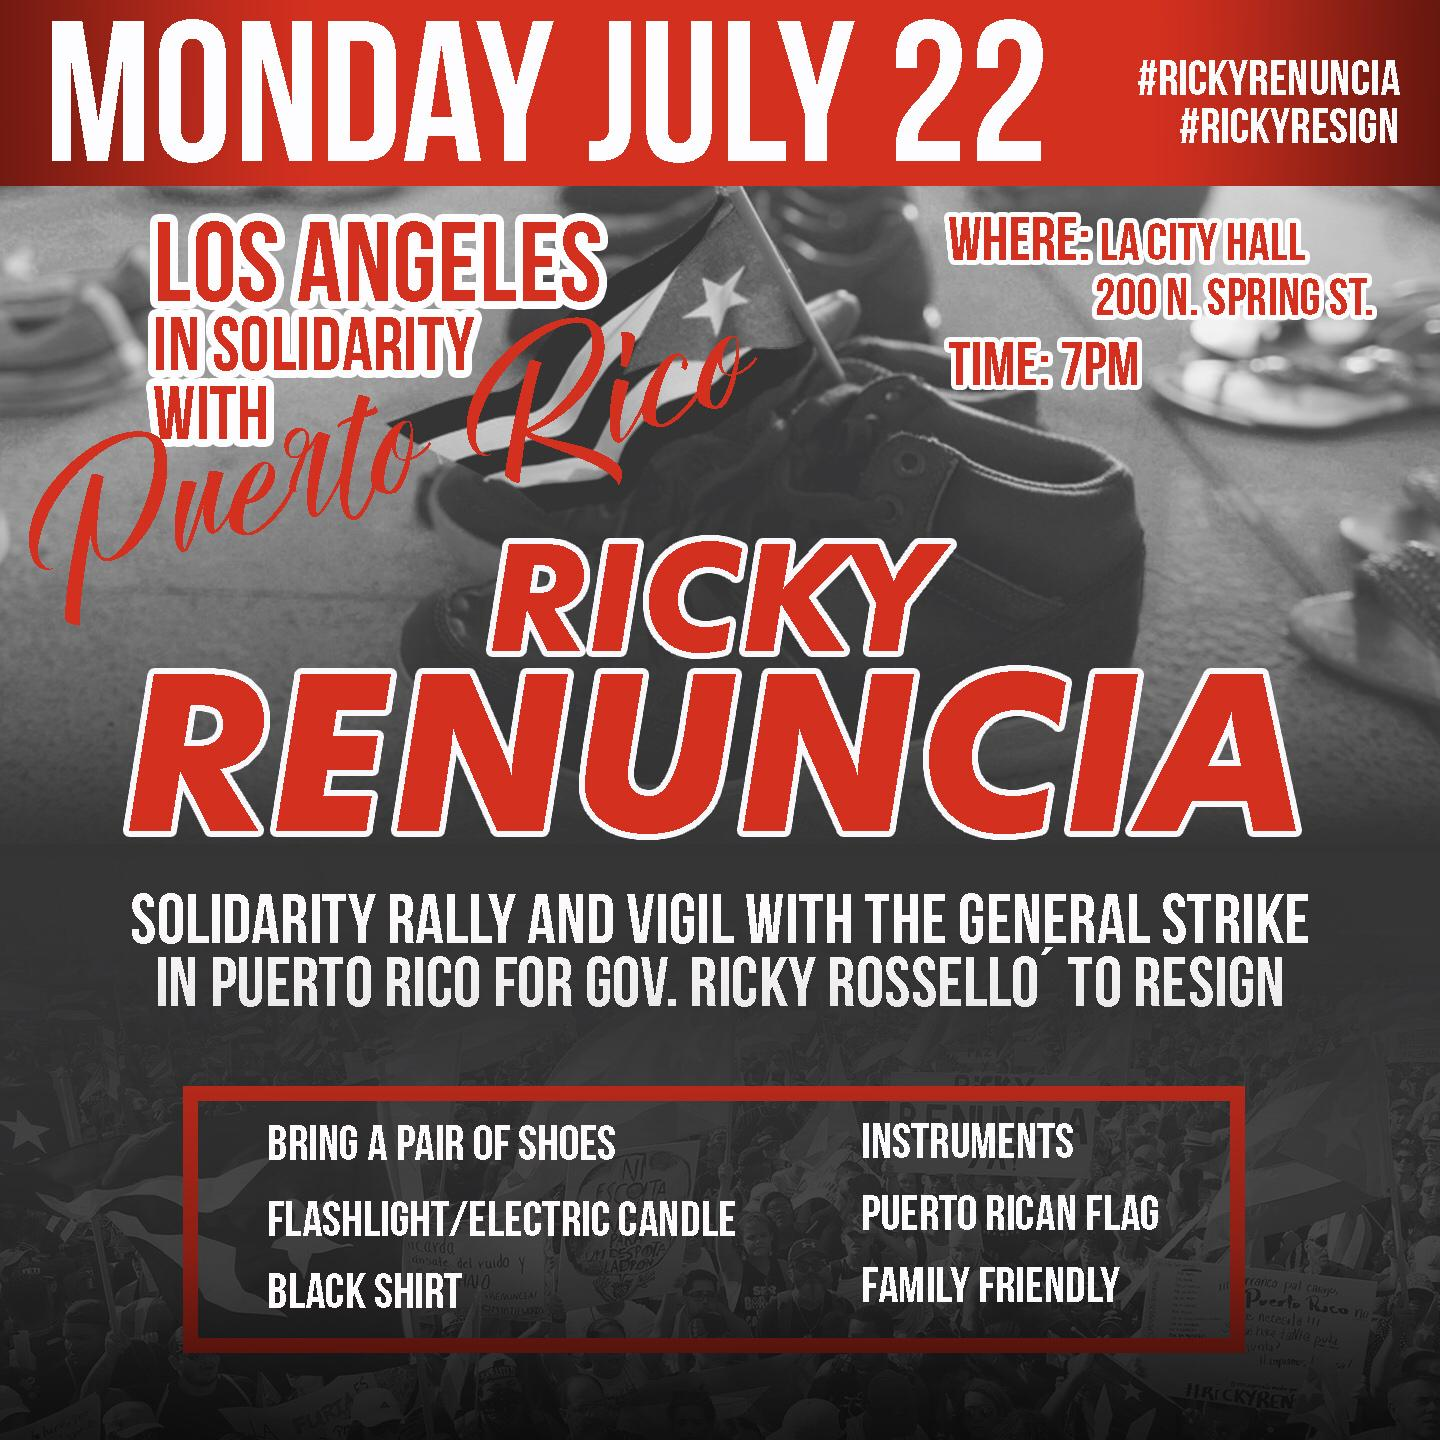 - In light of Ricardo Rosselló continued refusal to resign as Governor of Puerto Rico, the Los Angeles diaspora and allies are gathering for a VIGIL in solidarity with the Monday, July 22 Paro Nacionall/General Strike across the island demanding #RickyRenuncia! We will be honoring the 4,645 lives lost in Hurricanes Irma and Maria with a display of shoes representing those who perished - many without official acknowledgement - due to the neglect of the Puerto Rican and US governments. 5 min. walk from Civic Center/Grand Park Red Line Metro Stop, Kid Friendly!